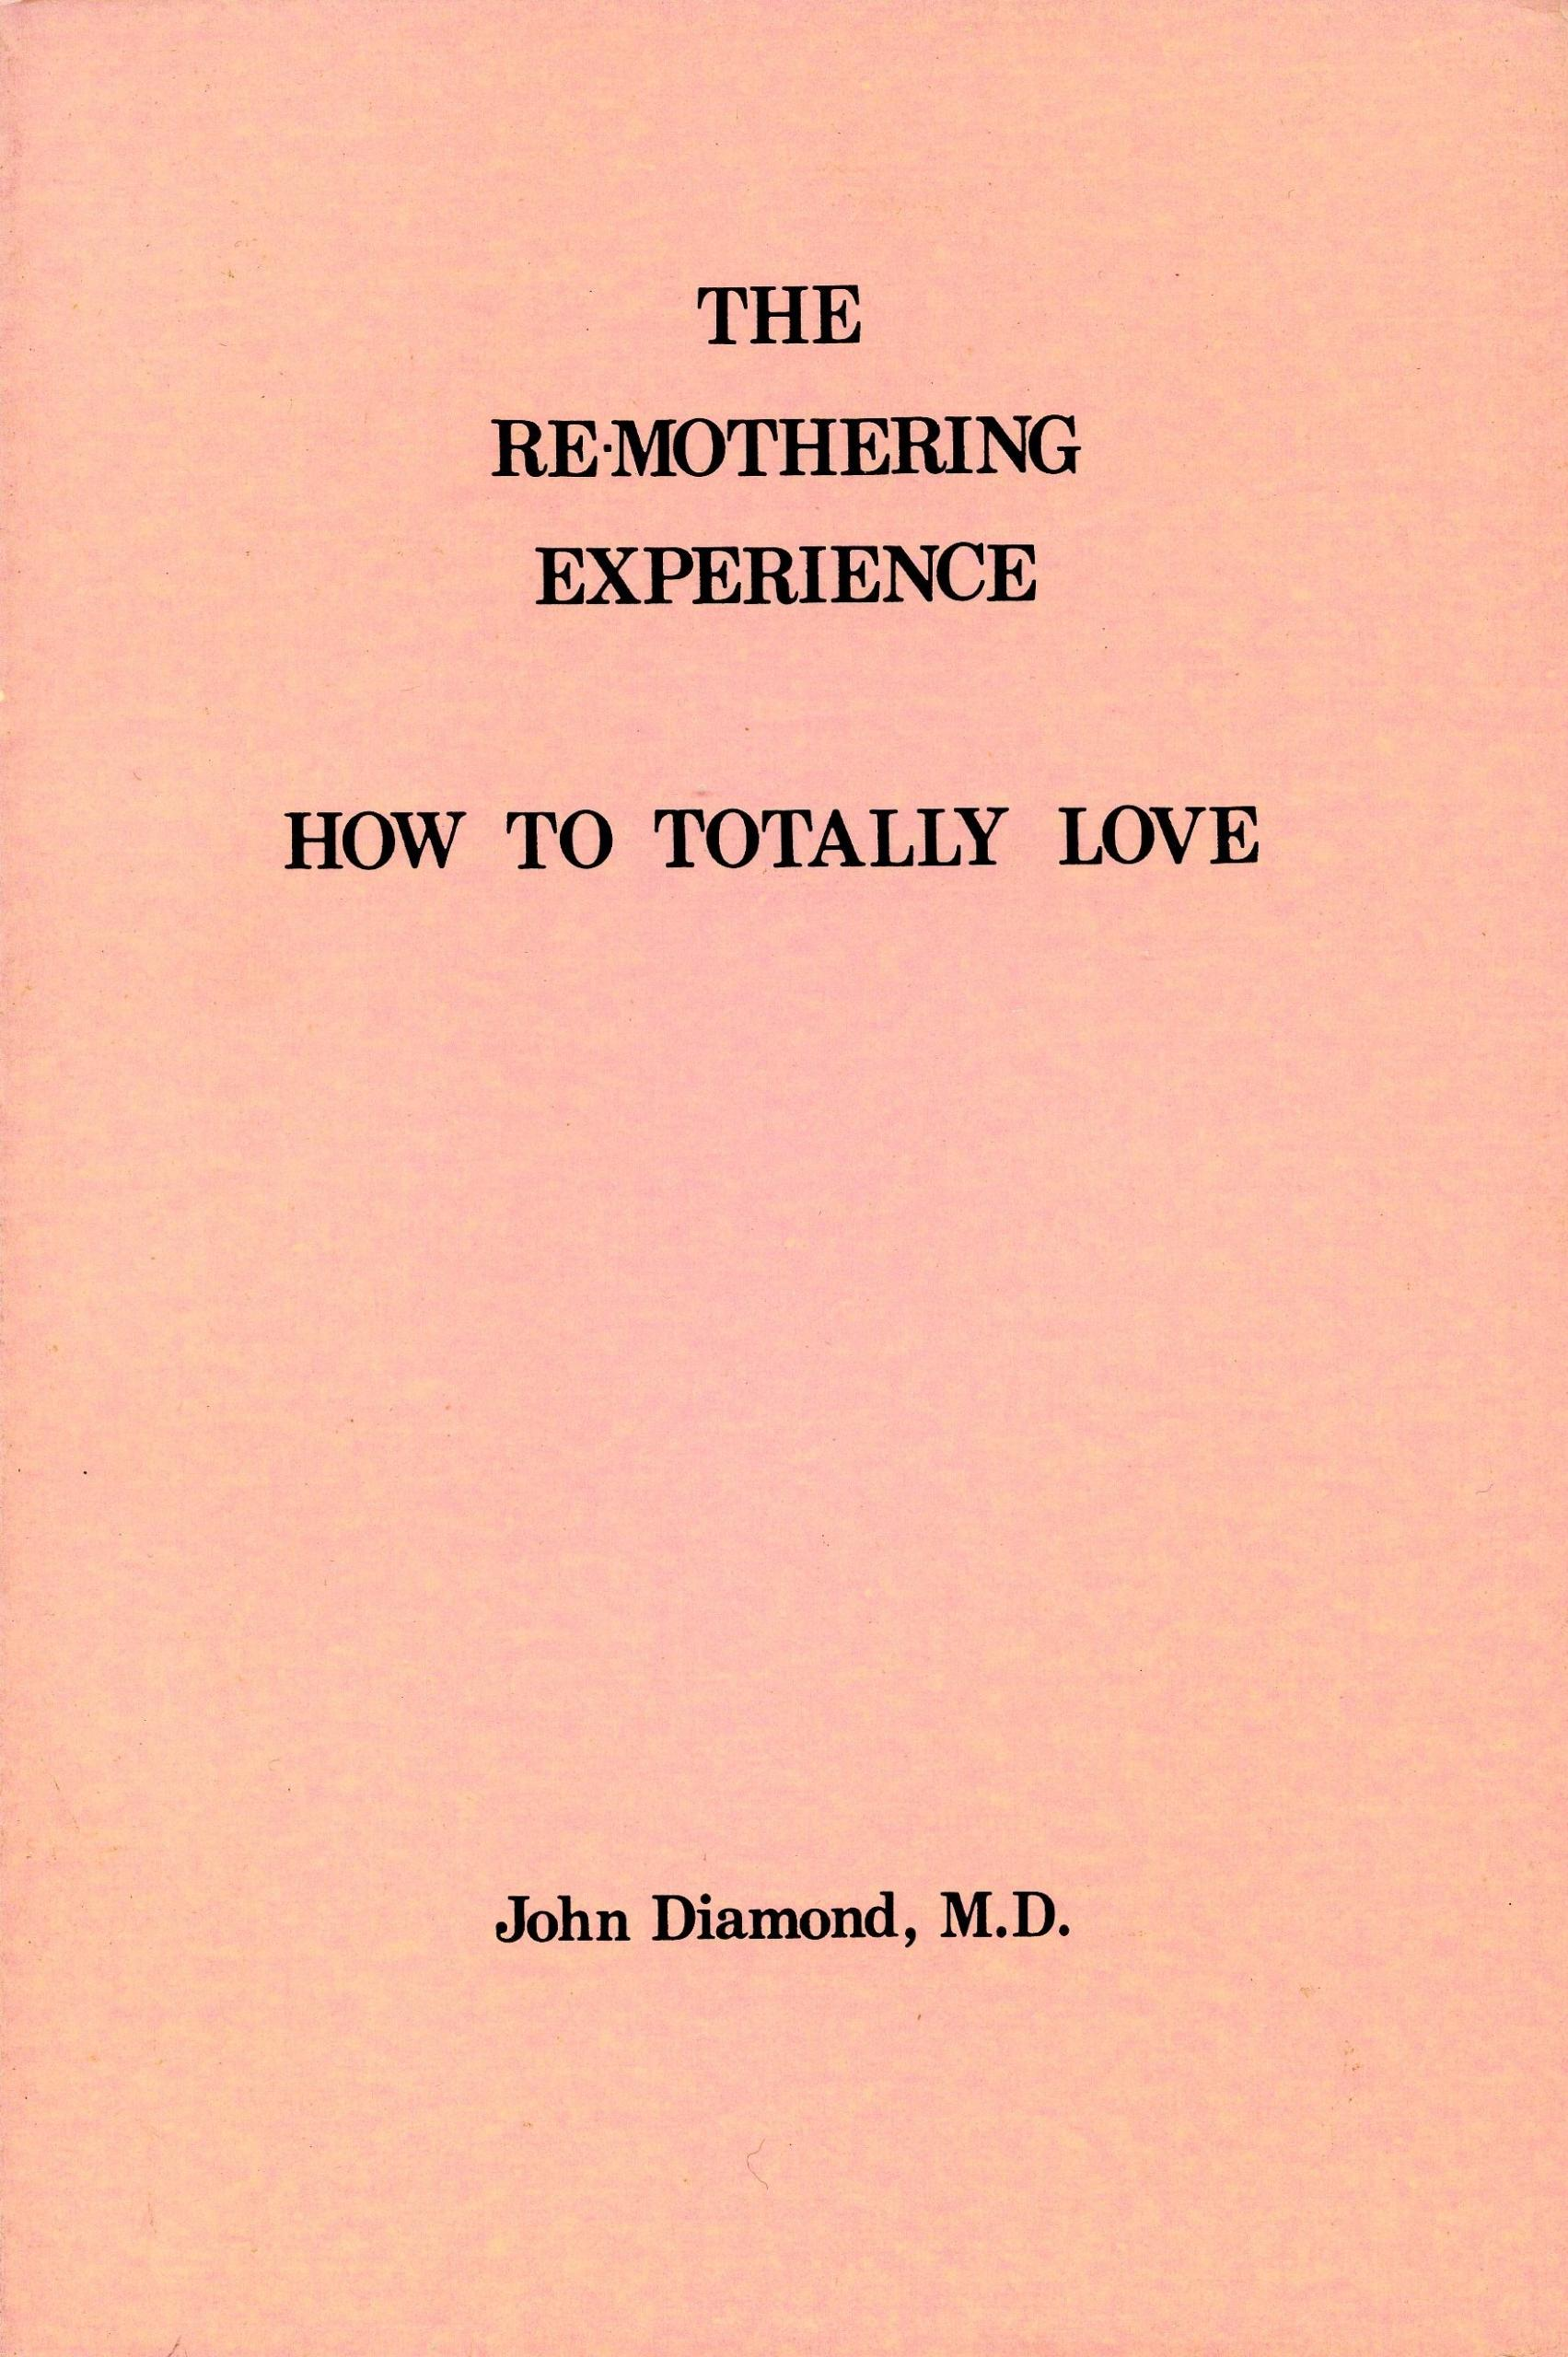 The Re-Mothering Experience: How to Totally Love